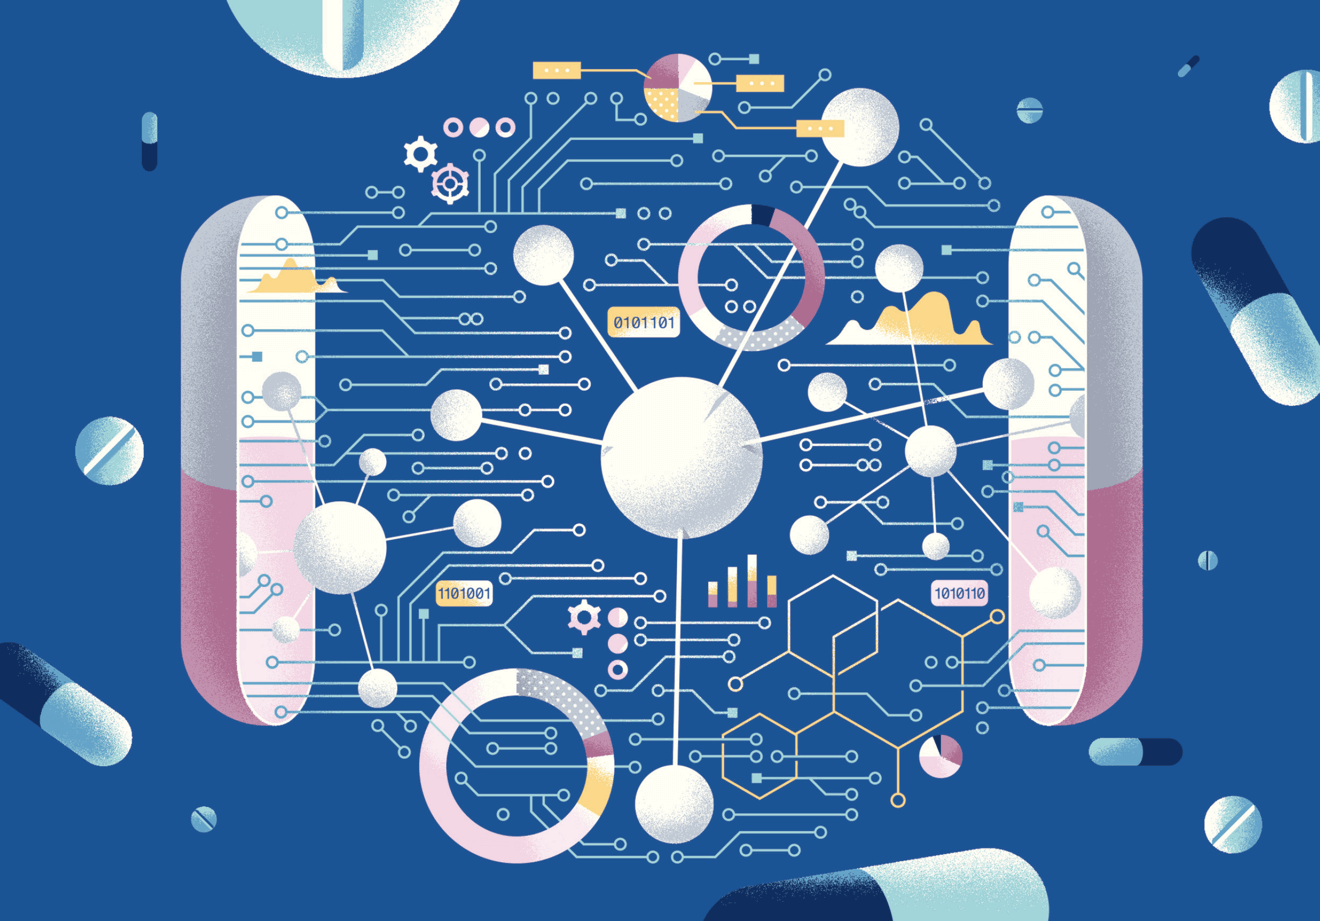 World first for AI in medicine - Digital & Innovation in Healthcare